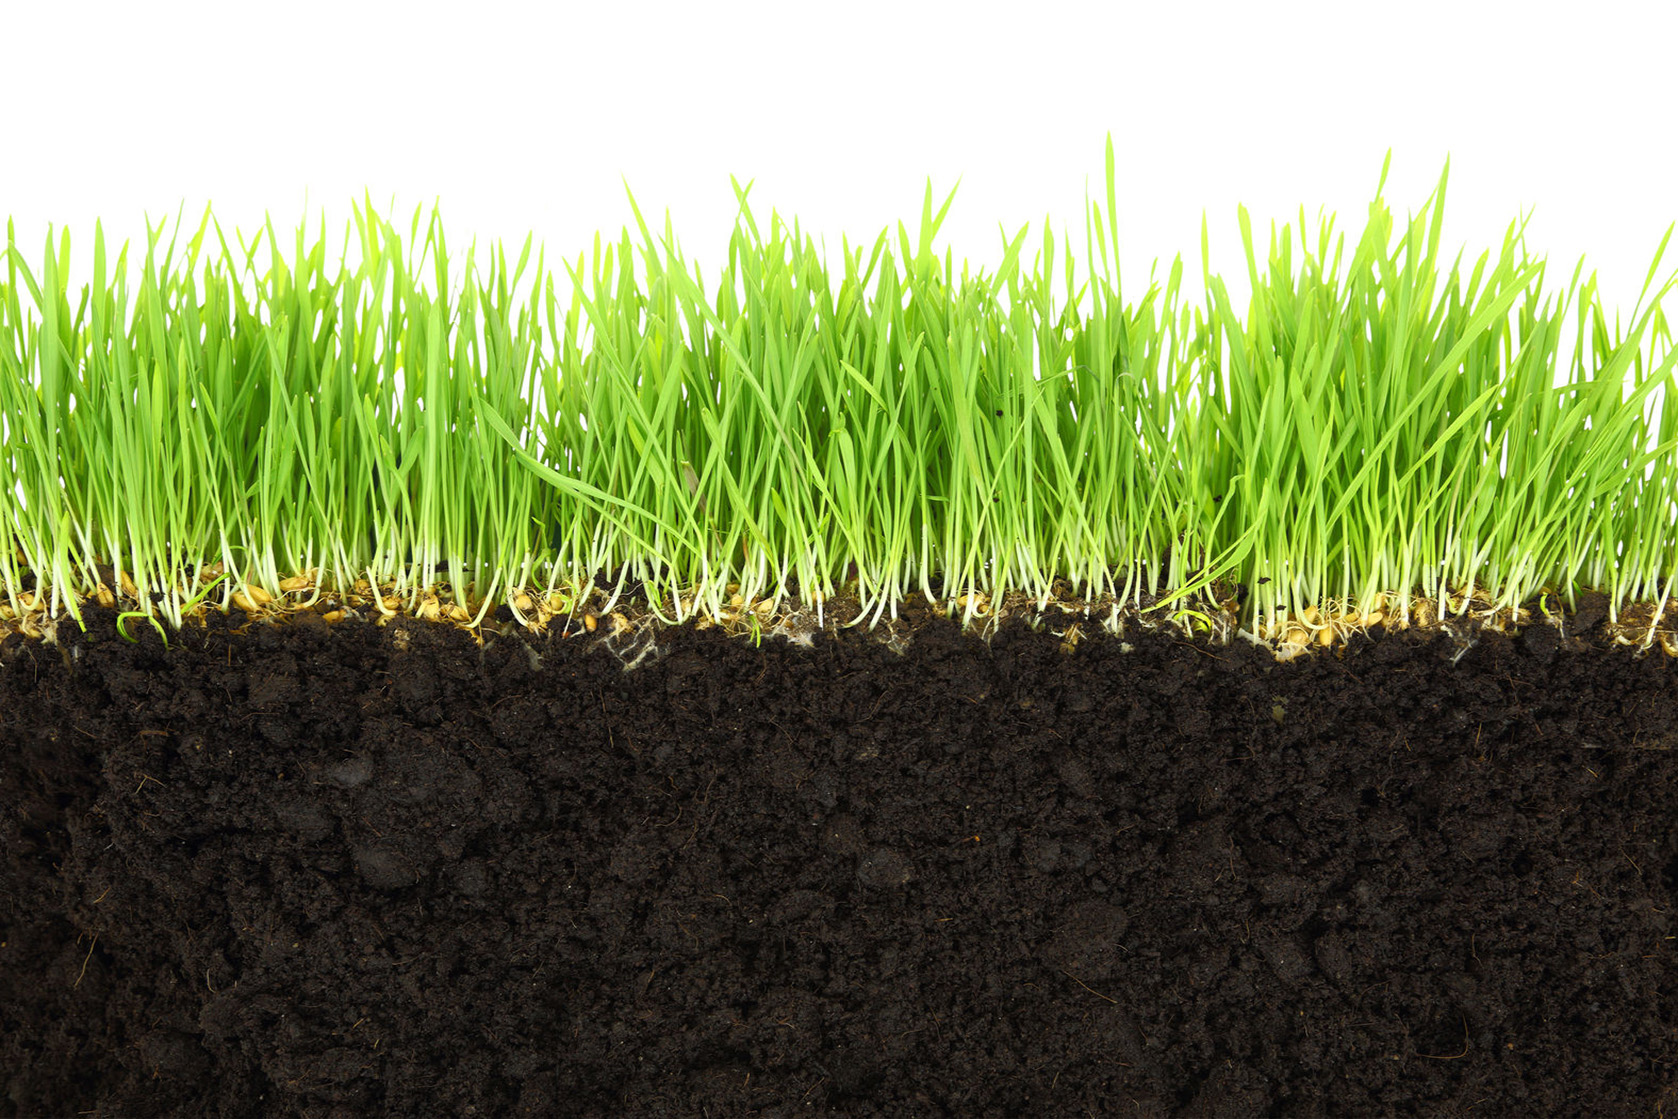 25603113 - cross-section of soil and grass isolated on white background